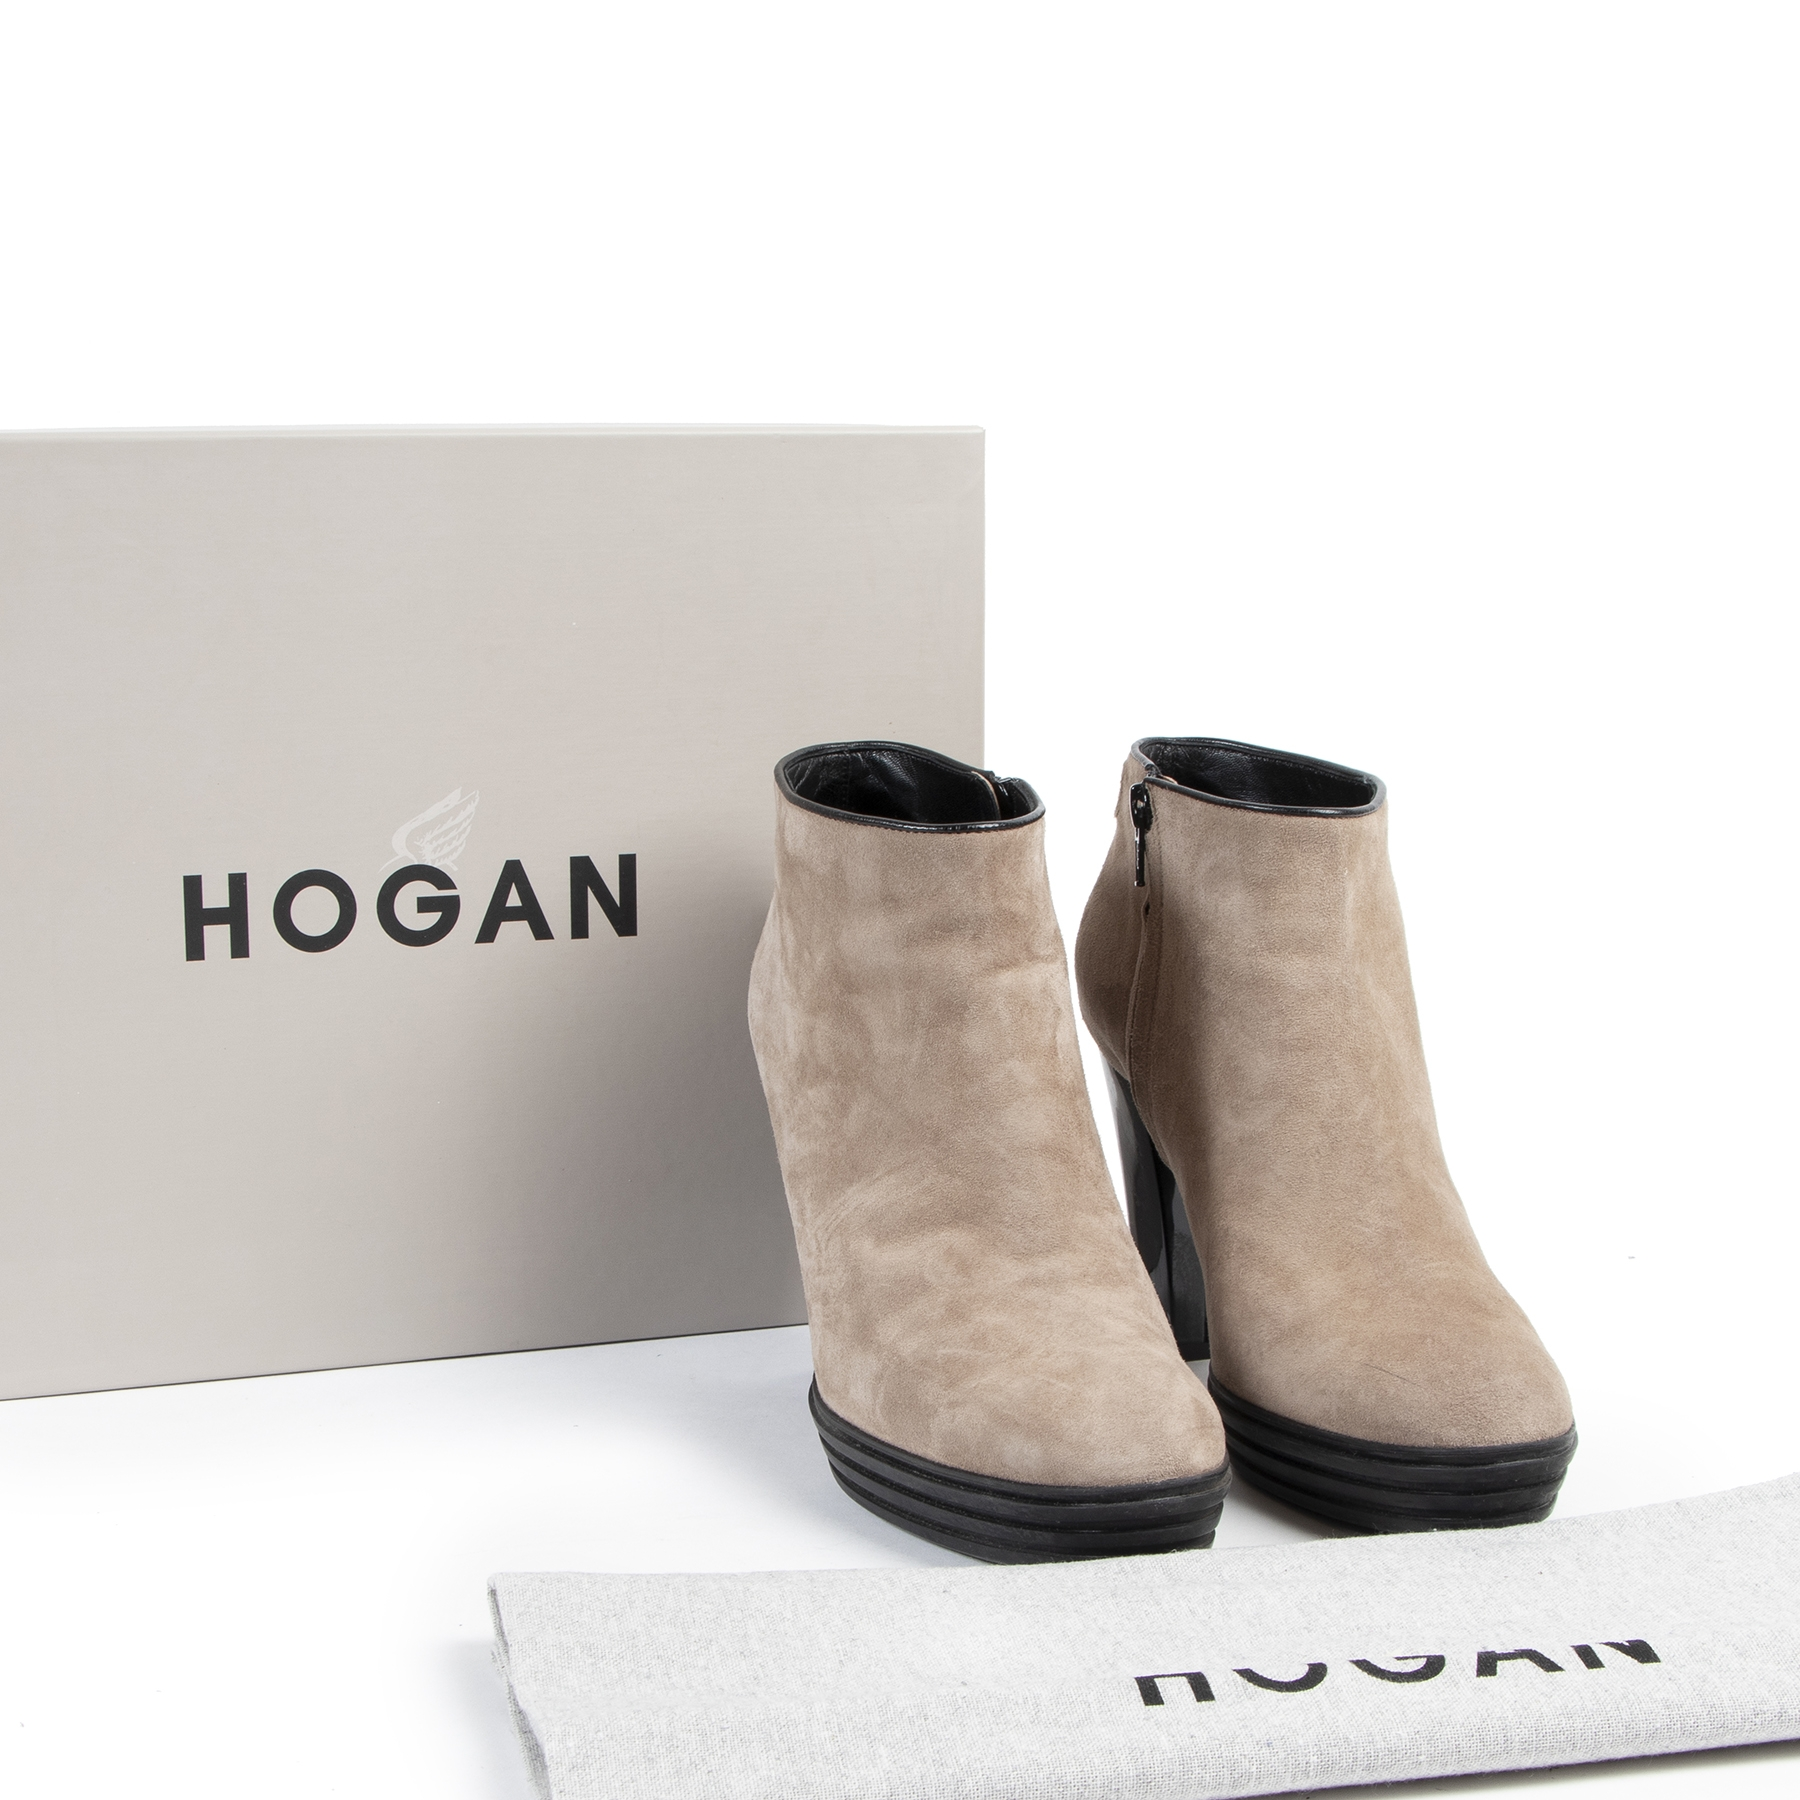 Are you looking for an authentic pair of Hogan Taupe Ankle Boots